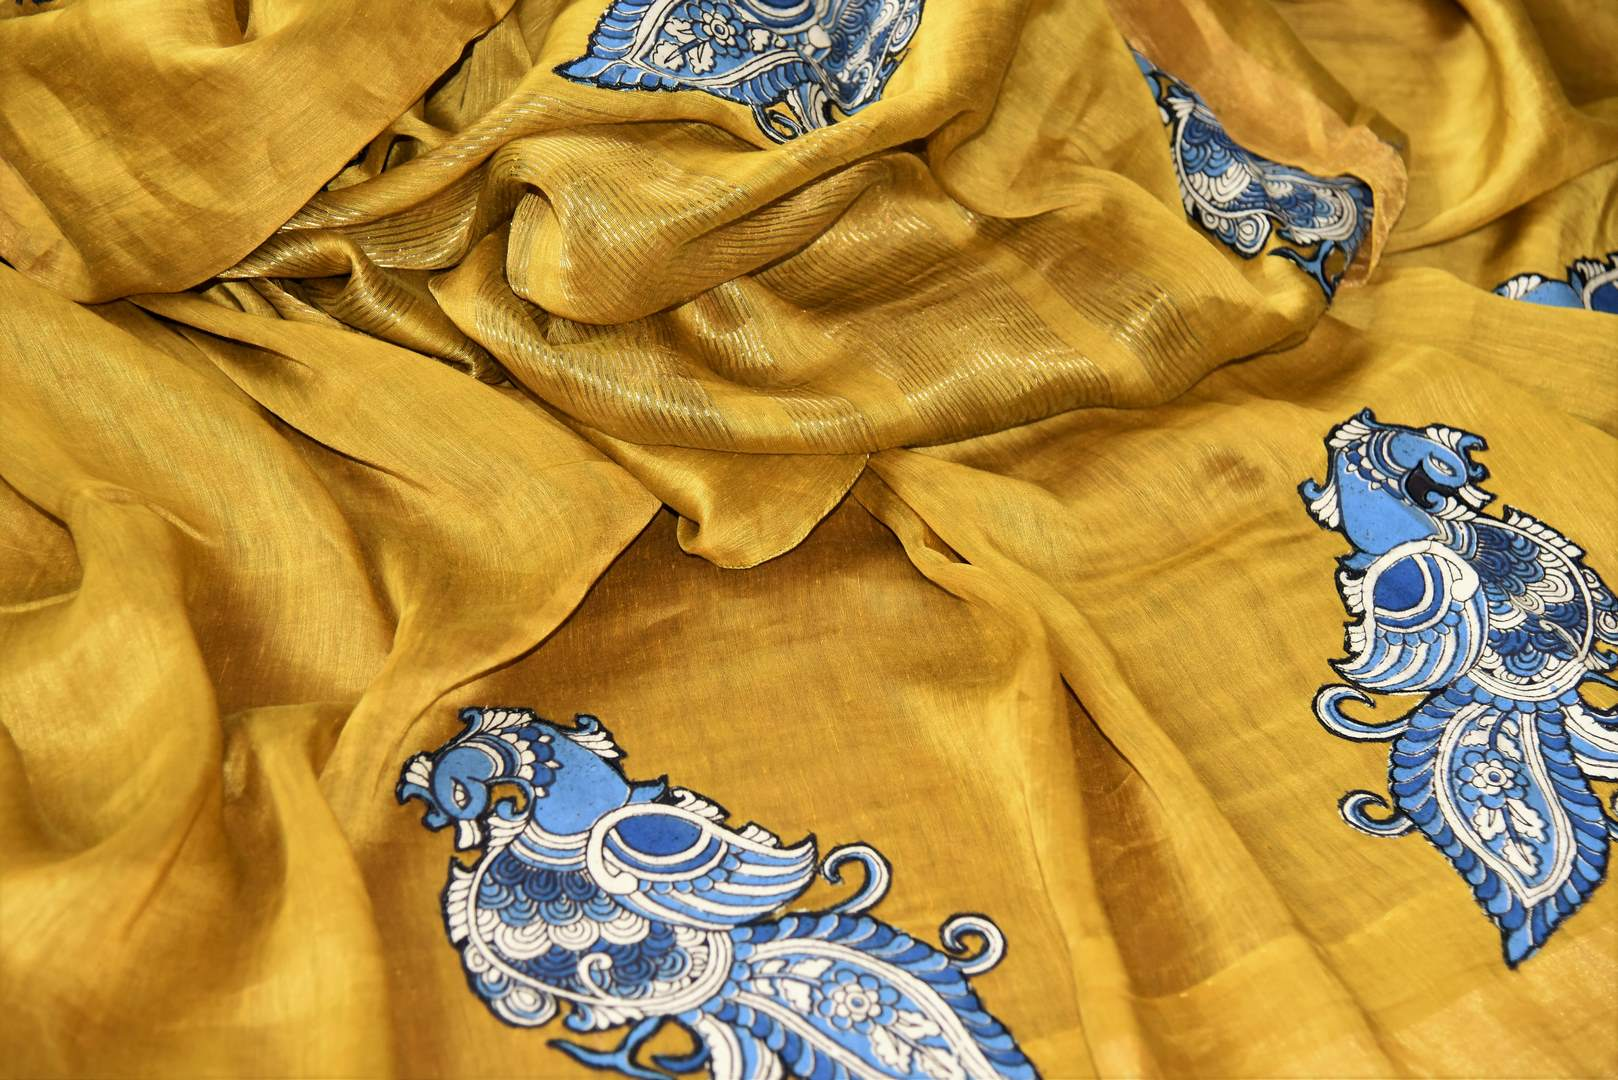 Mustard yellow tussar silk sari for online shopping in USA with peacock Kalamkari applique. Beautifully designed woven sari is a graceful choice for special occasions. Shop Indian handloom sarees, silk saris in USA from an alluring collection available at Pure Elegance fashion store.-details